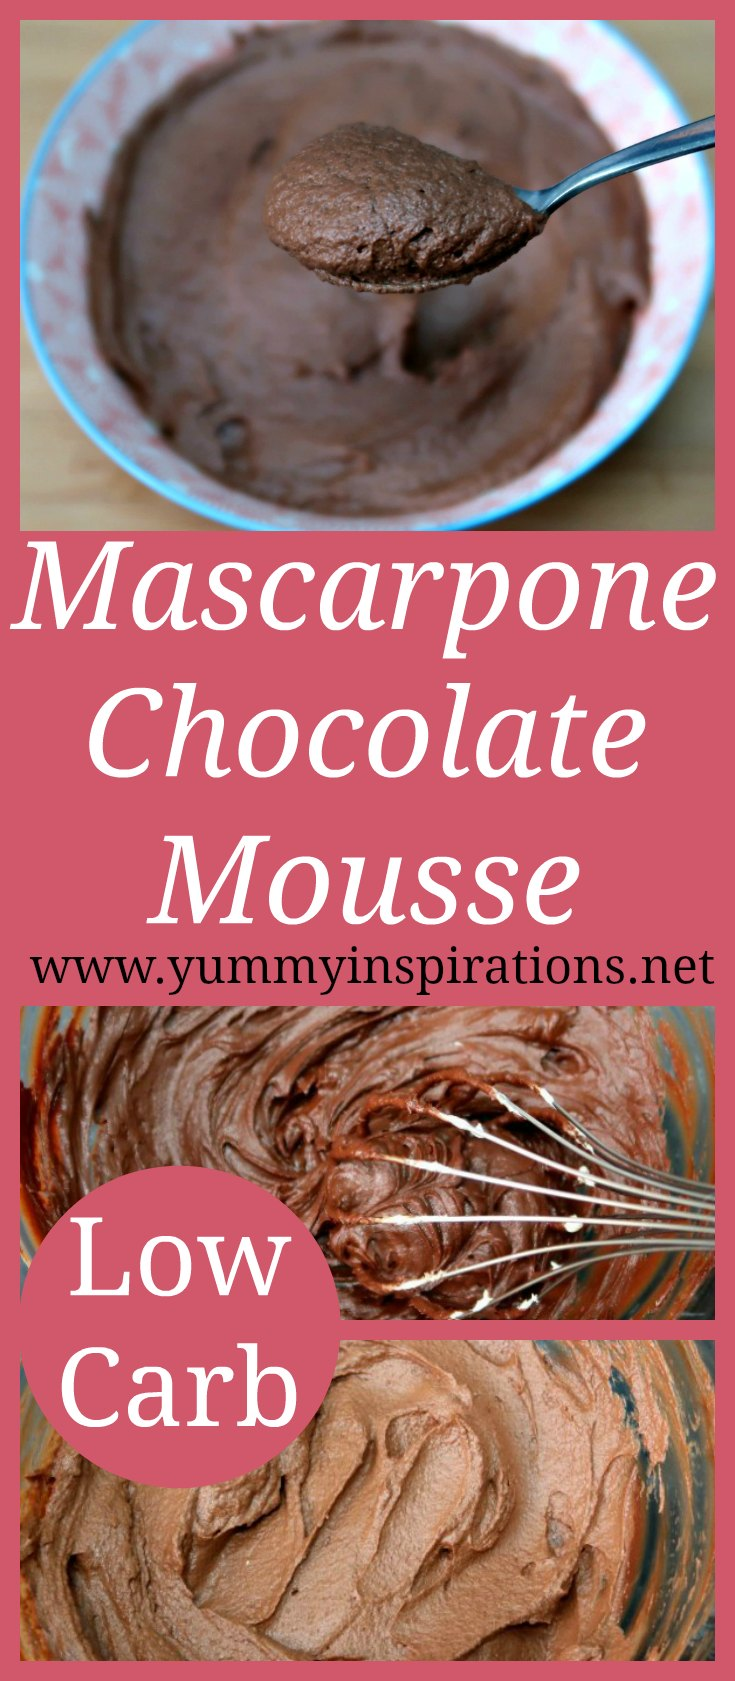 Low carb chocolate mousse recipe with mascarpone cheese - easy keto desserts